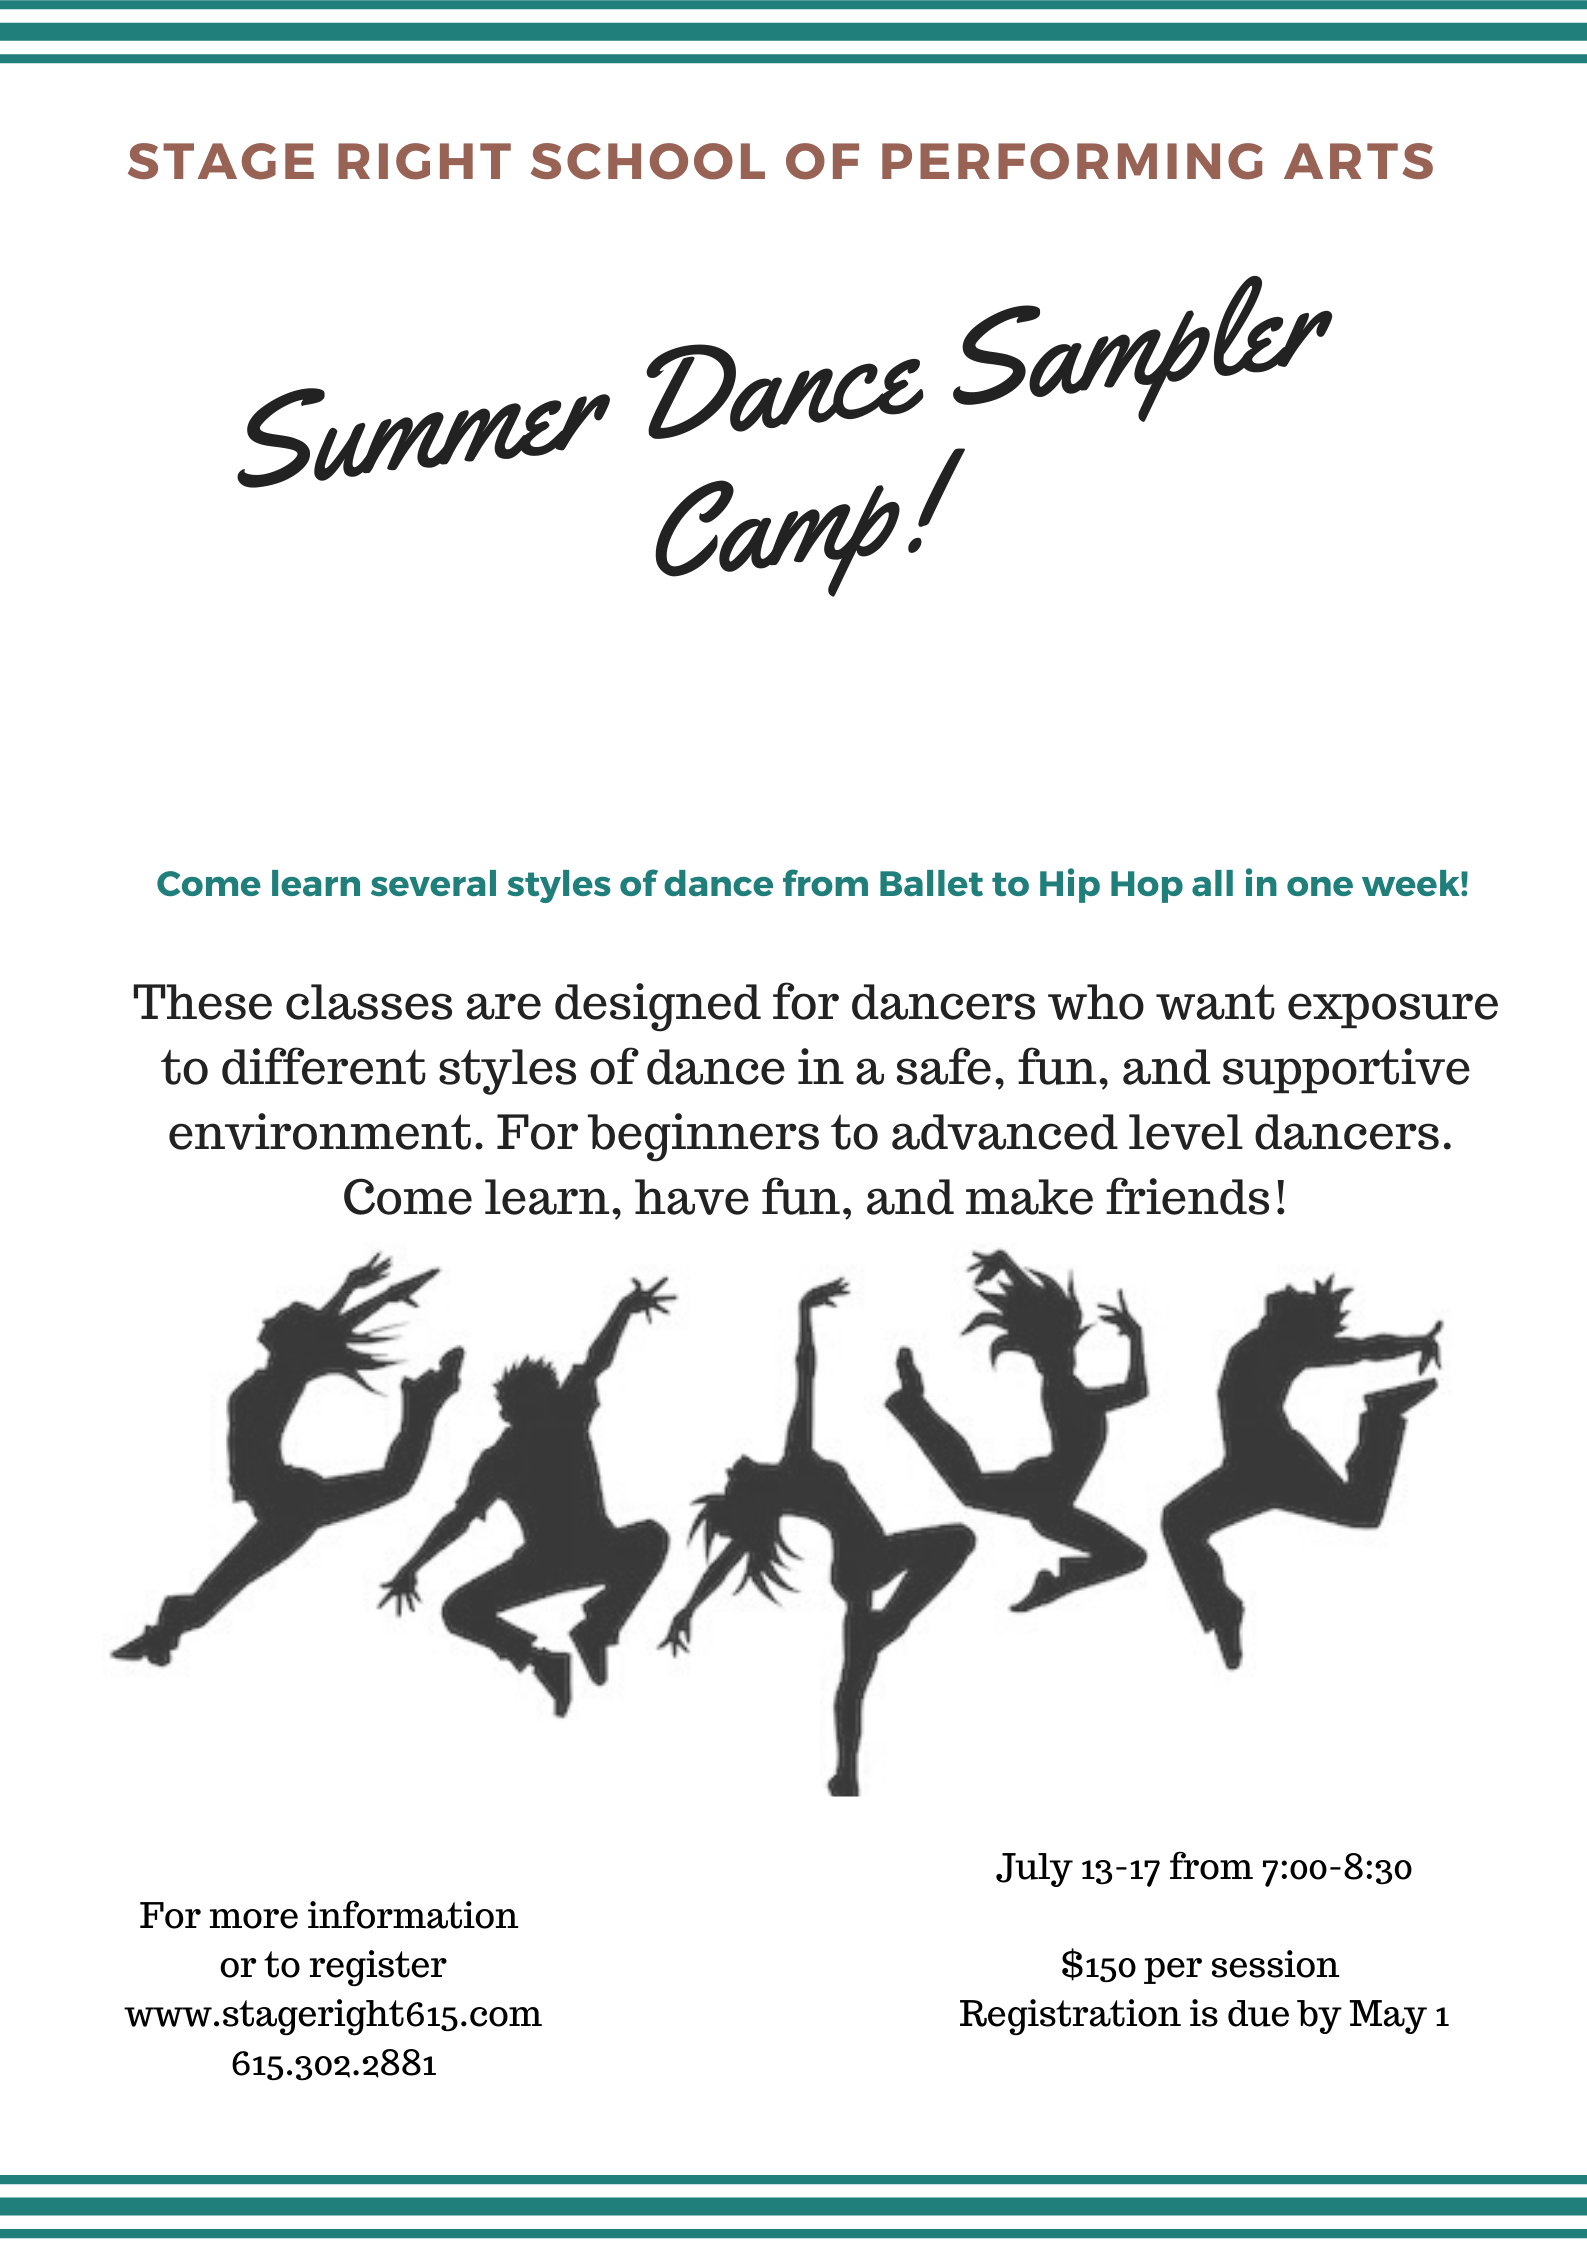 2020 Summer Dance Sampler